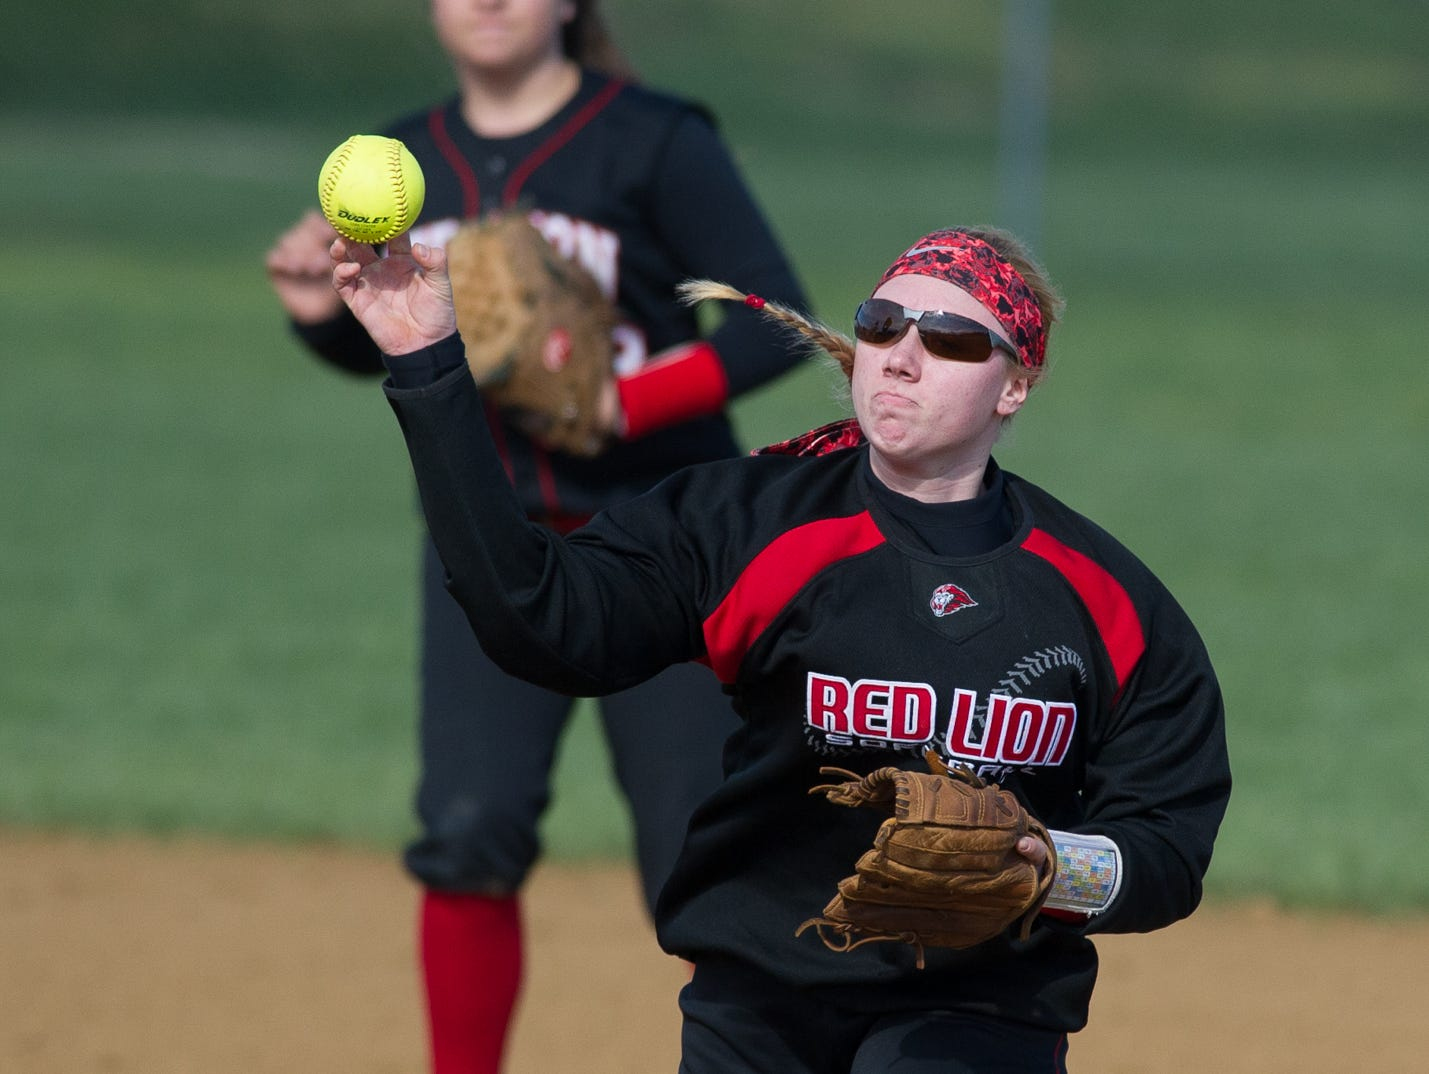 Red Lion's Taylor Beres (25) makes a throw to home plate in their game against Lake Forest.